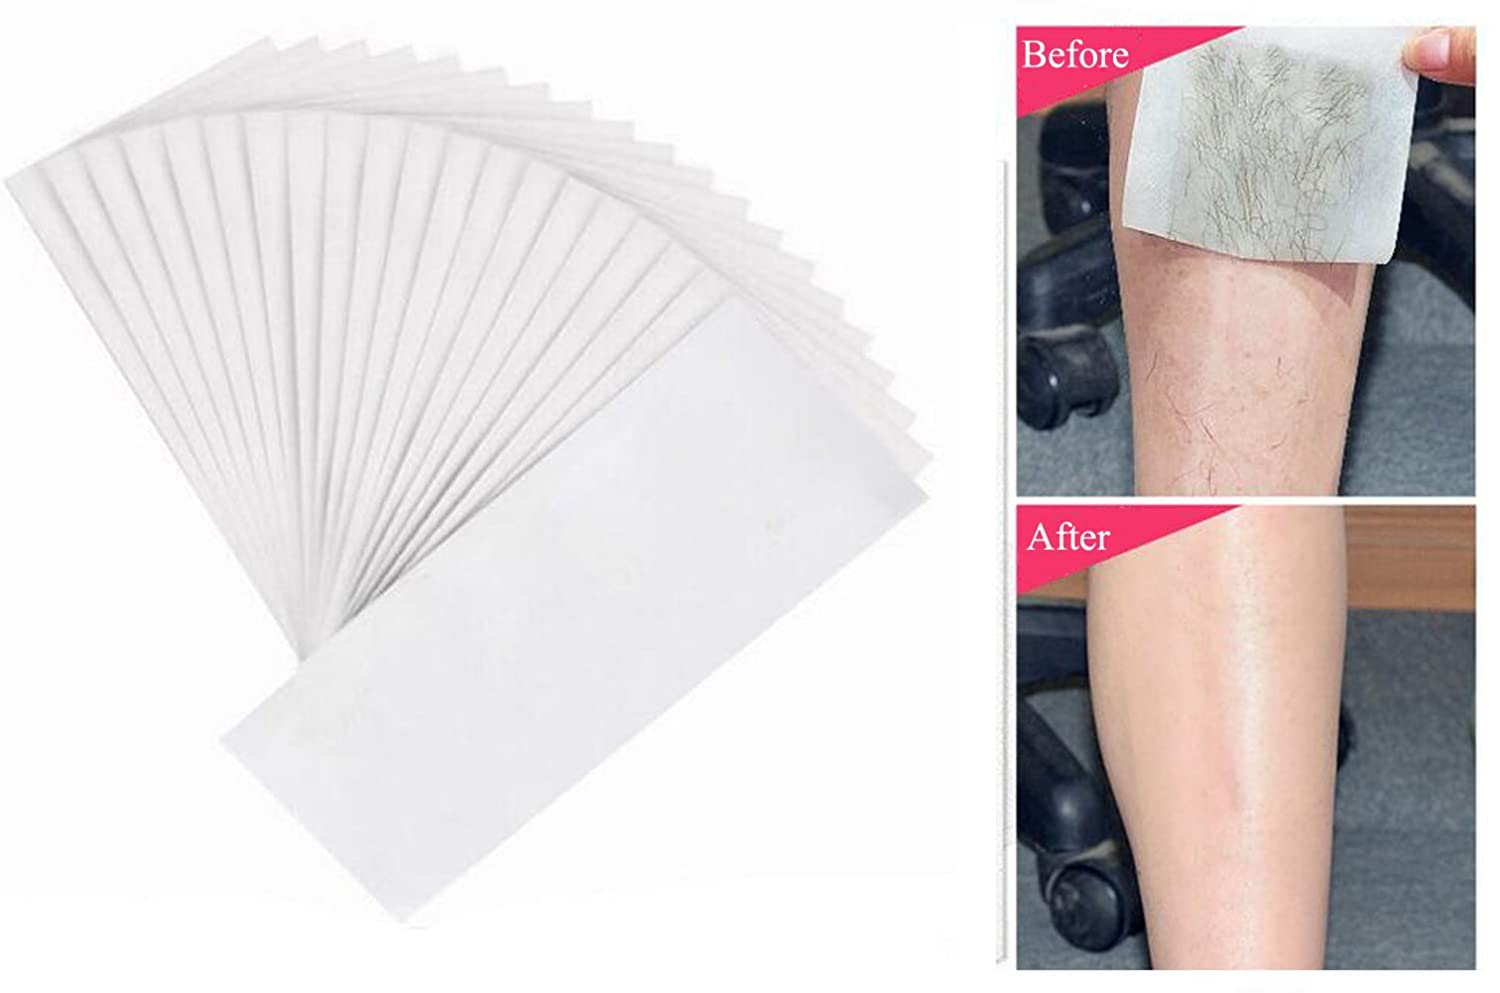 100PCS White Disposable Non-Woven Body Leg and Facial Wax Waxing Strips Epilator Professional Hair Removal Removing Tool Depilatory Paper for Unisex Men and Women UPSTORE